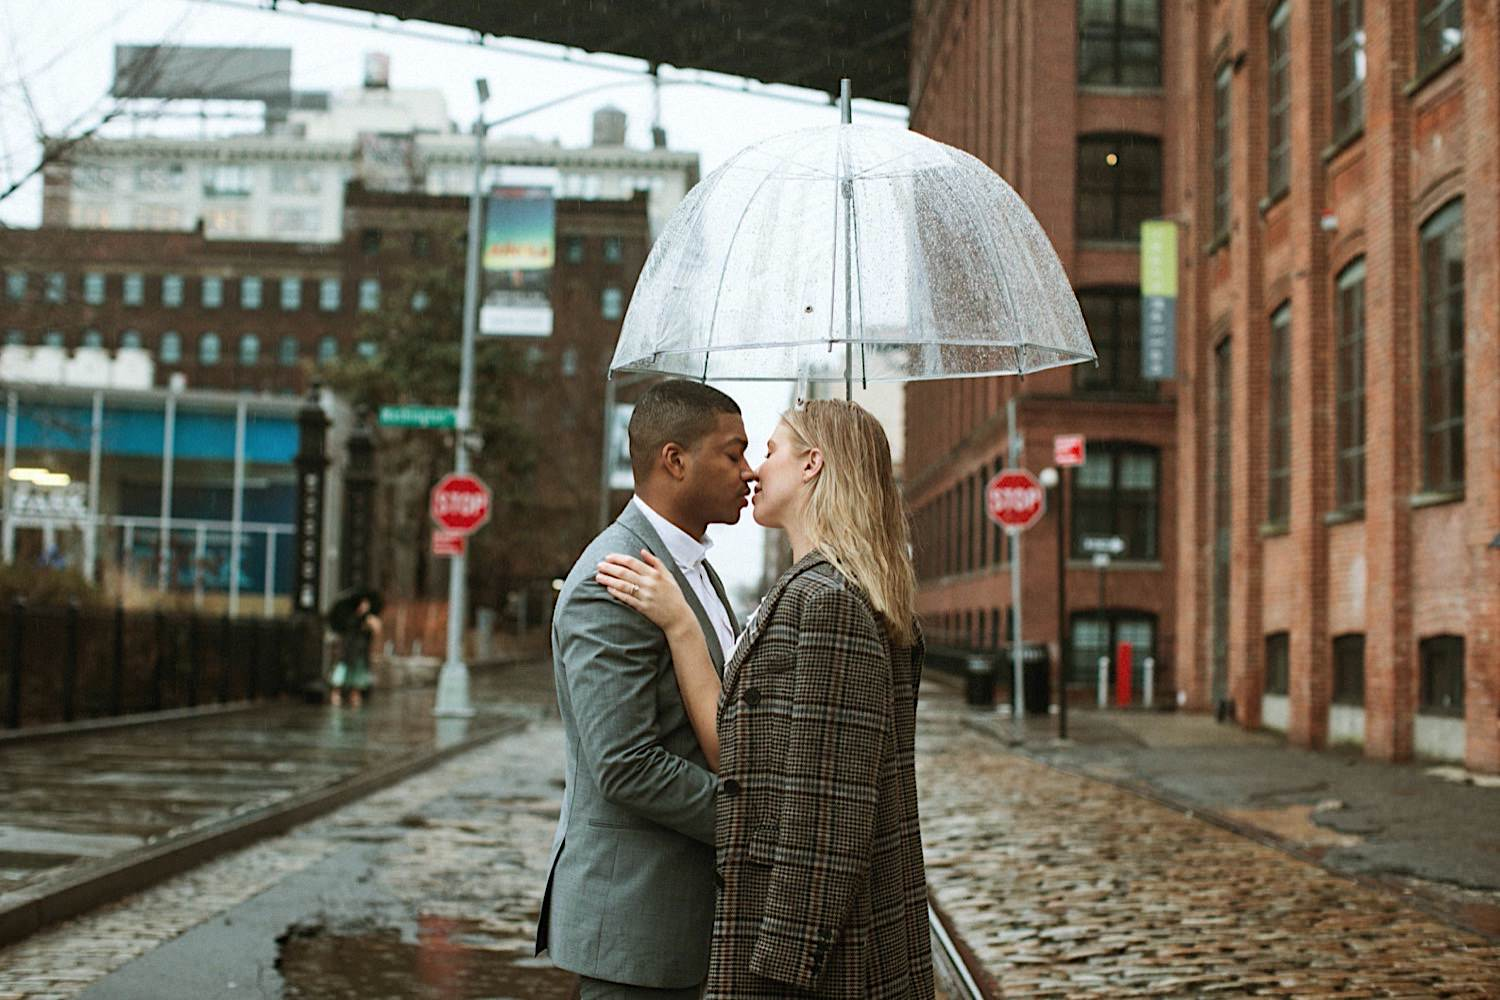 DUMBO Wedding Photos - A couple under their umbrella in the rain